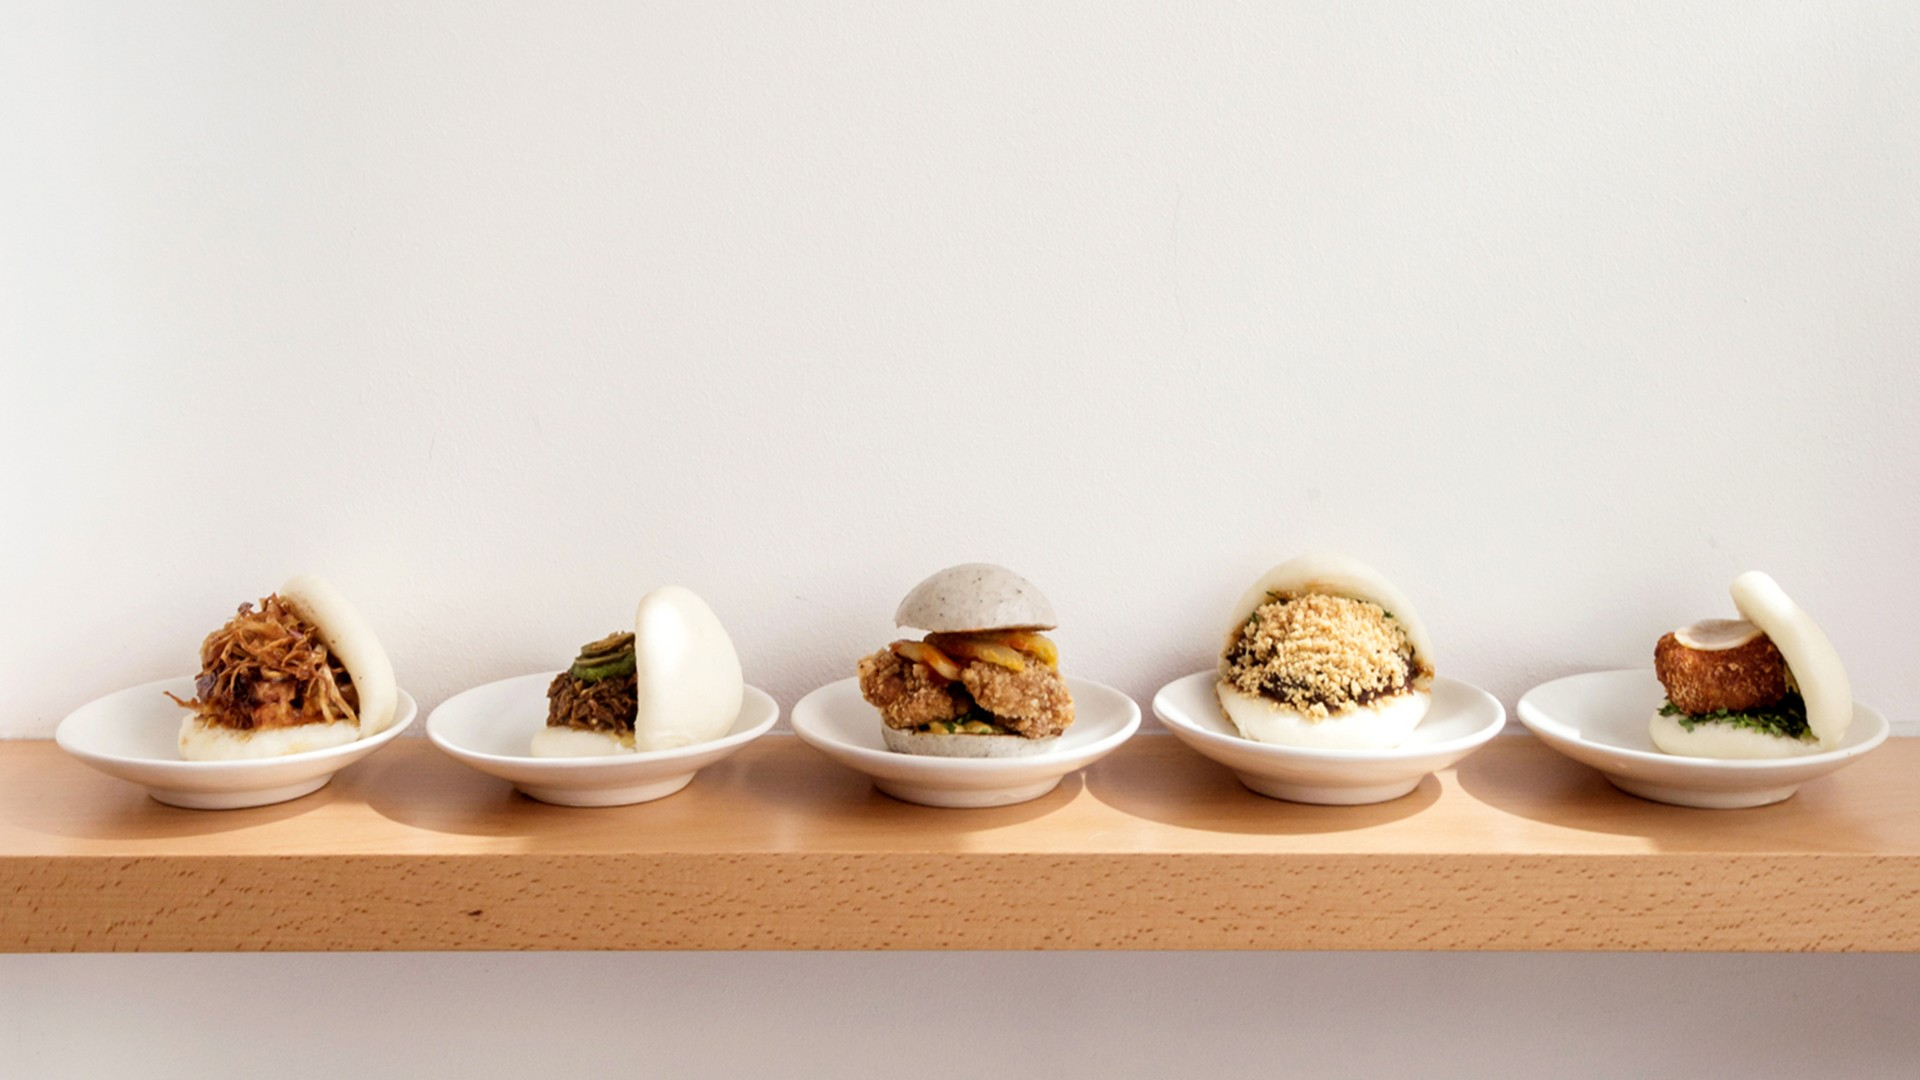 Soho restaurant guide: BAO Soho